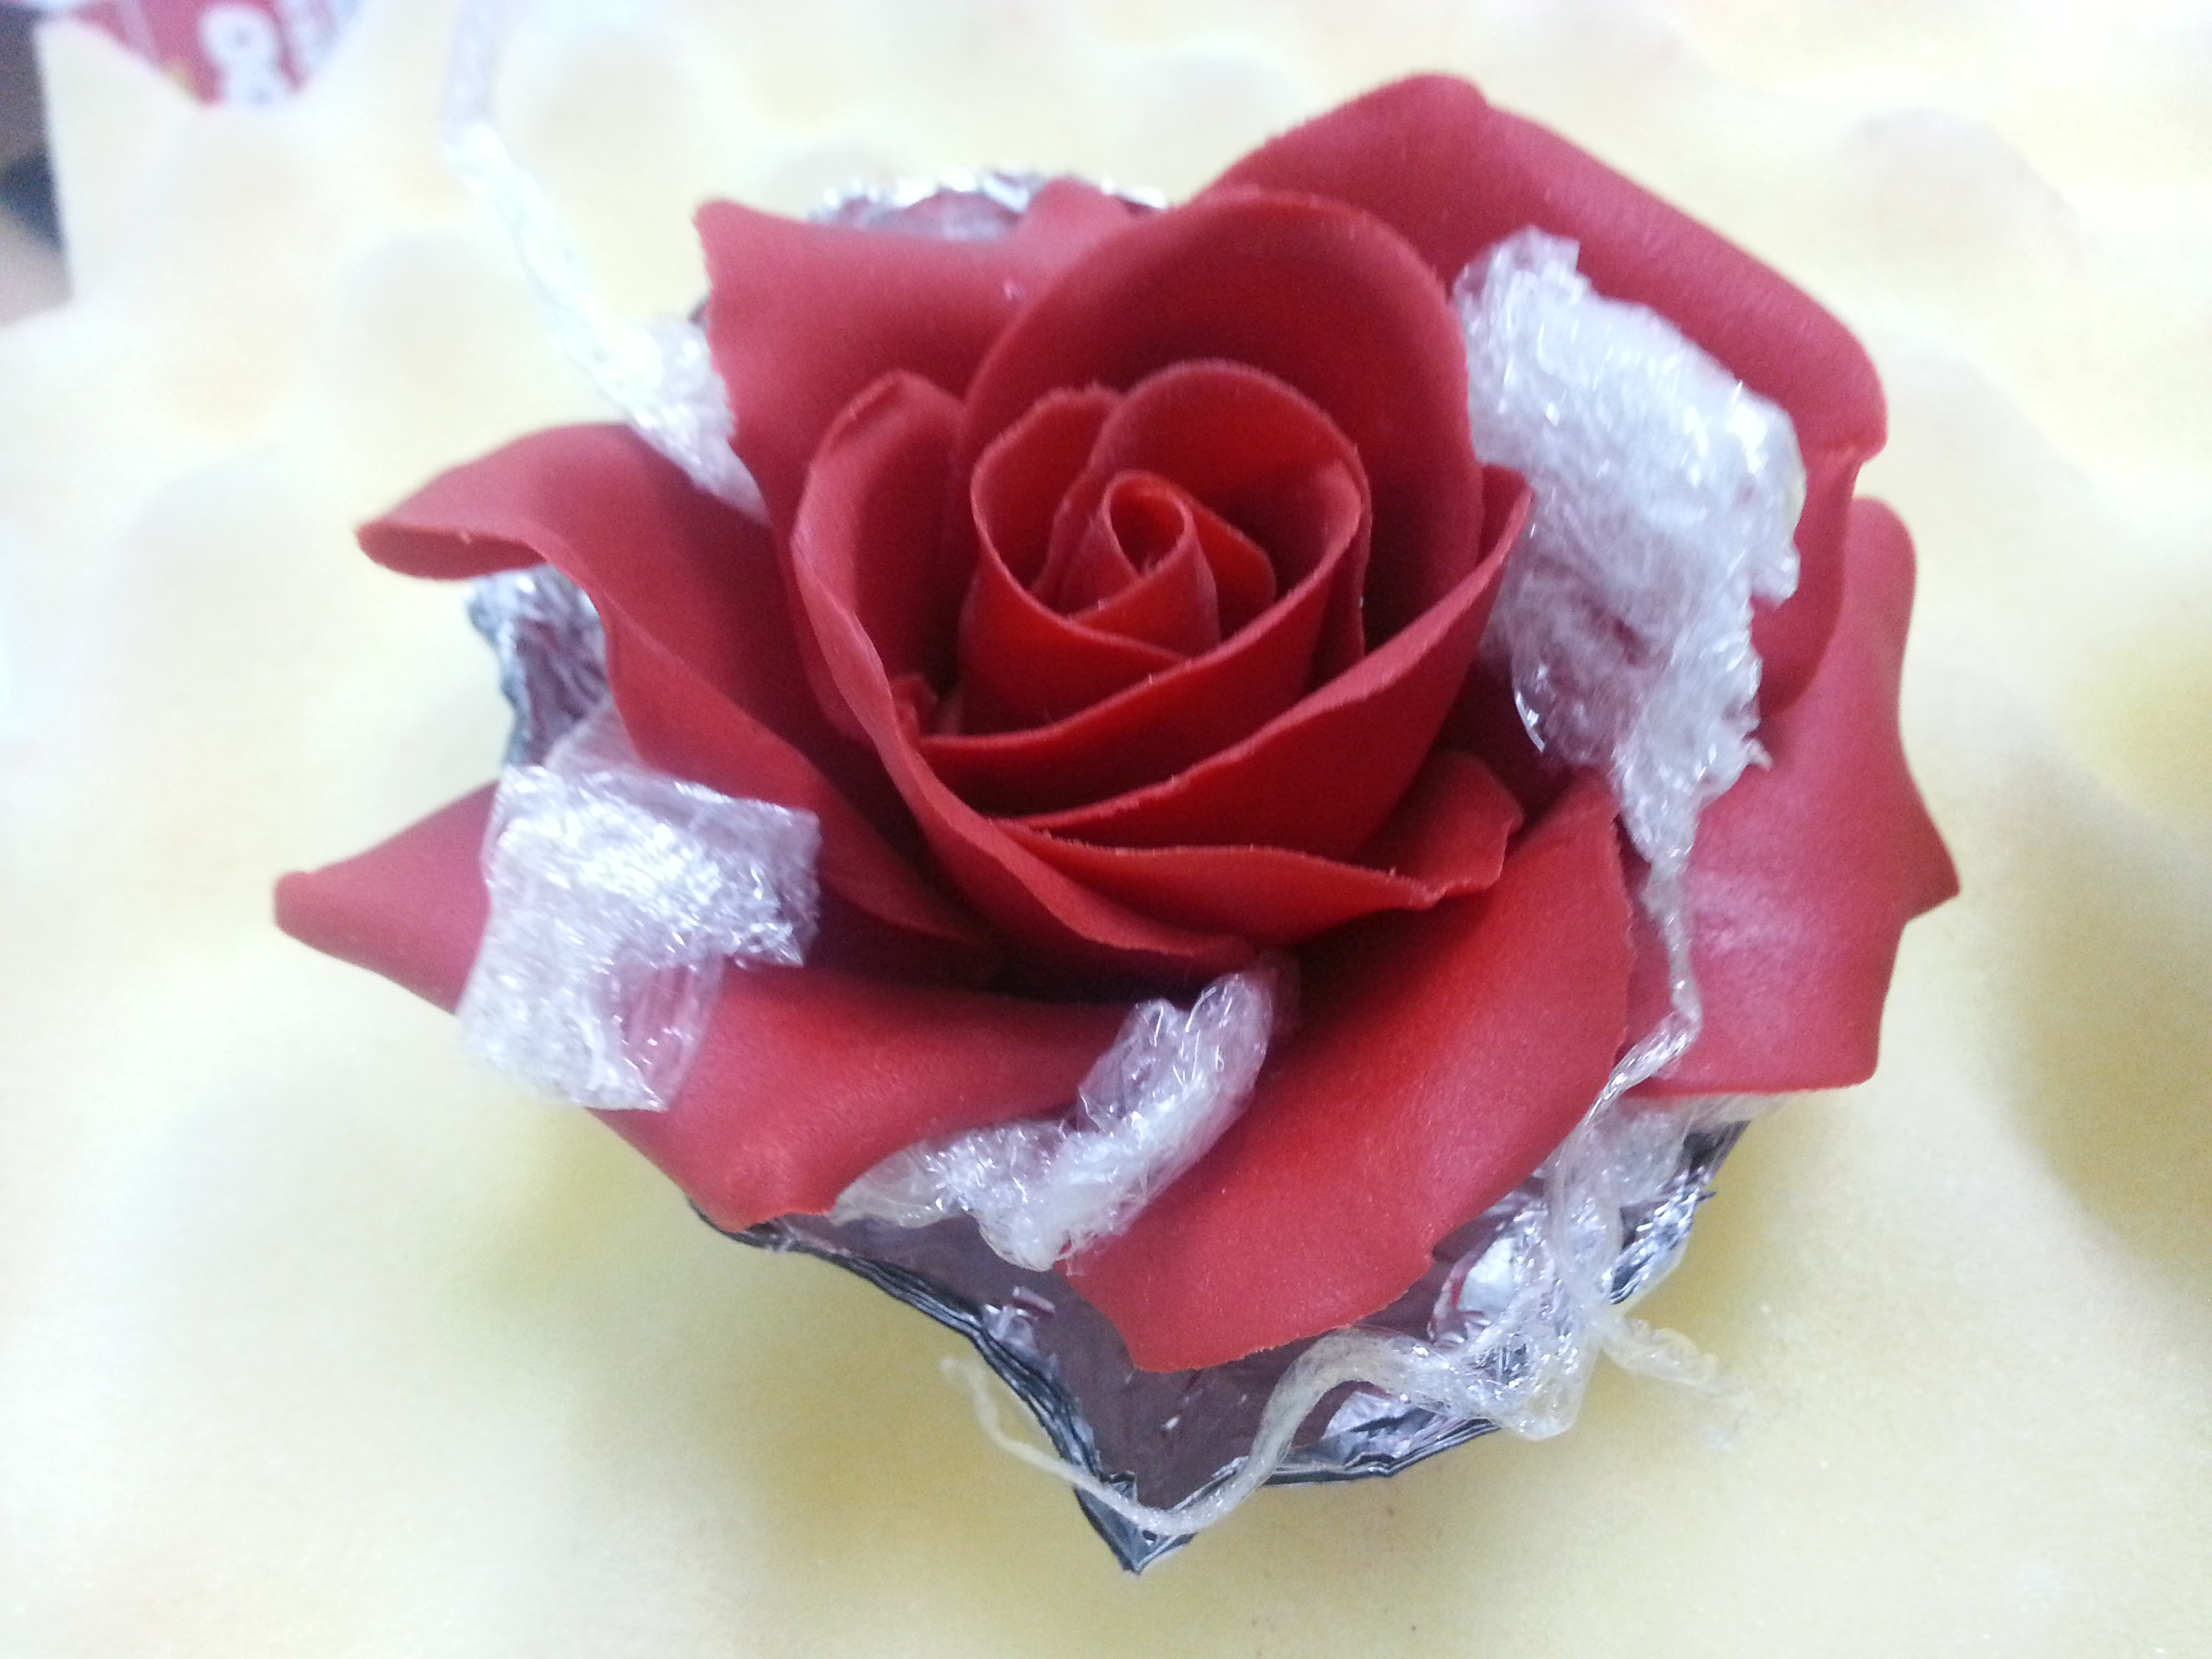 5 sugar flowers with diy cutters 20151008192224 20151003210742 20151006163745 20151008192231 20151003210755 izmirmasajfo